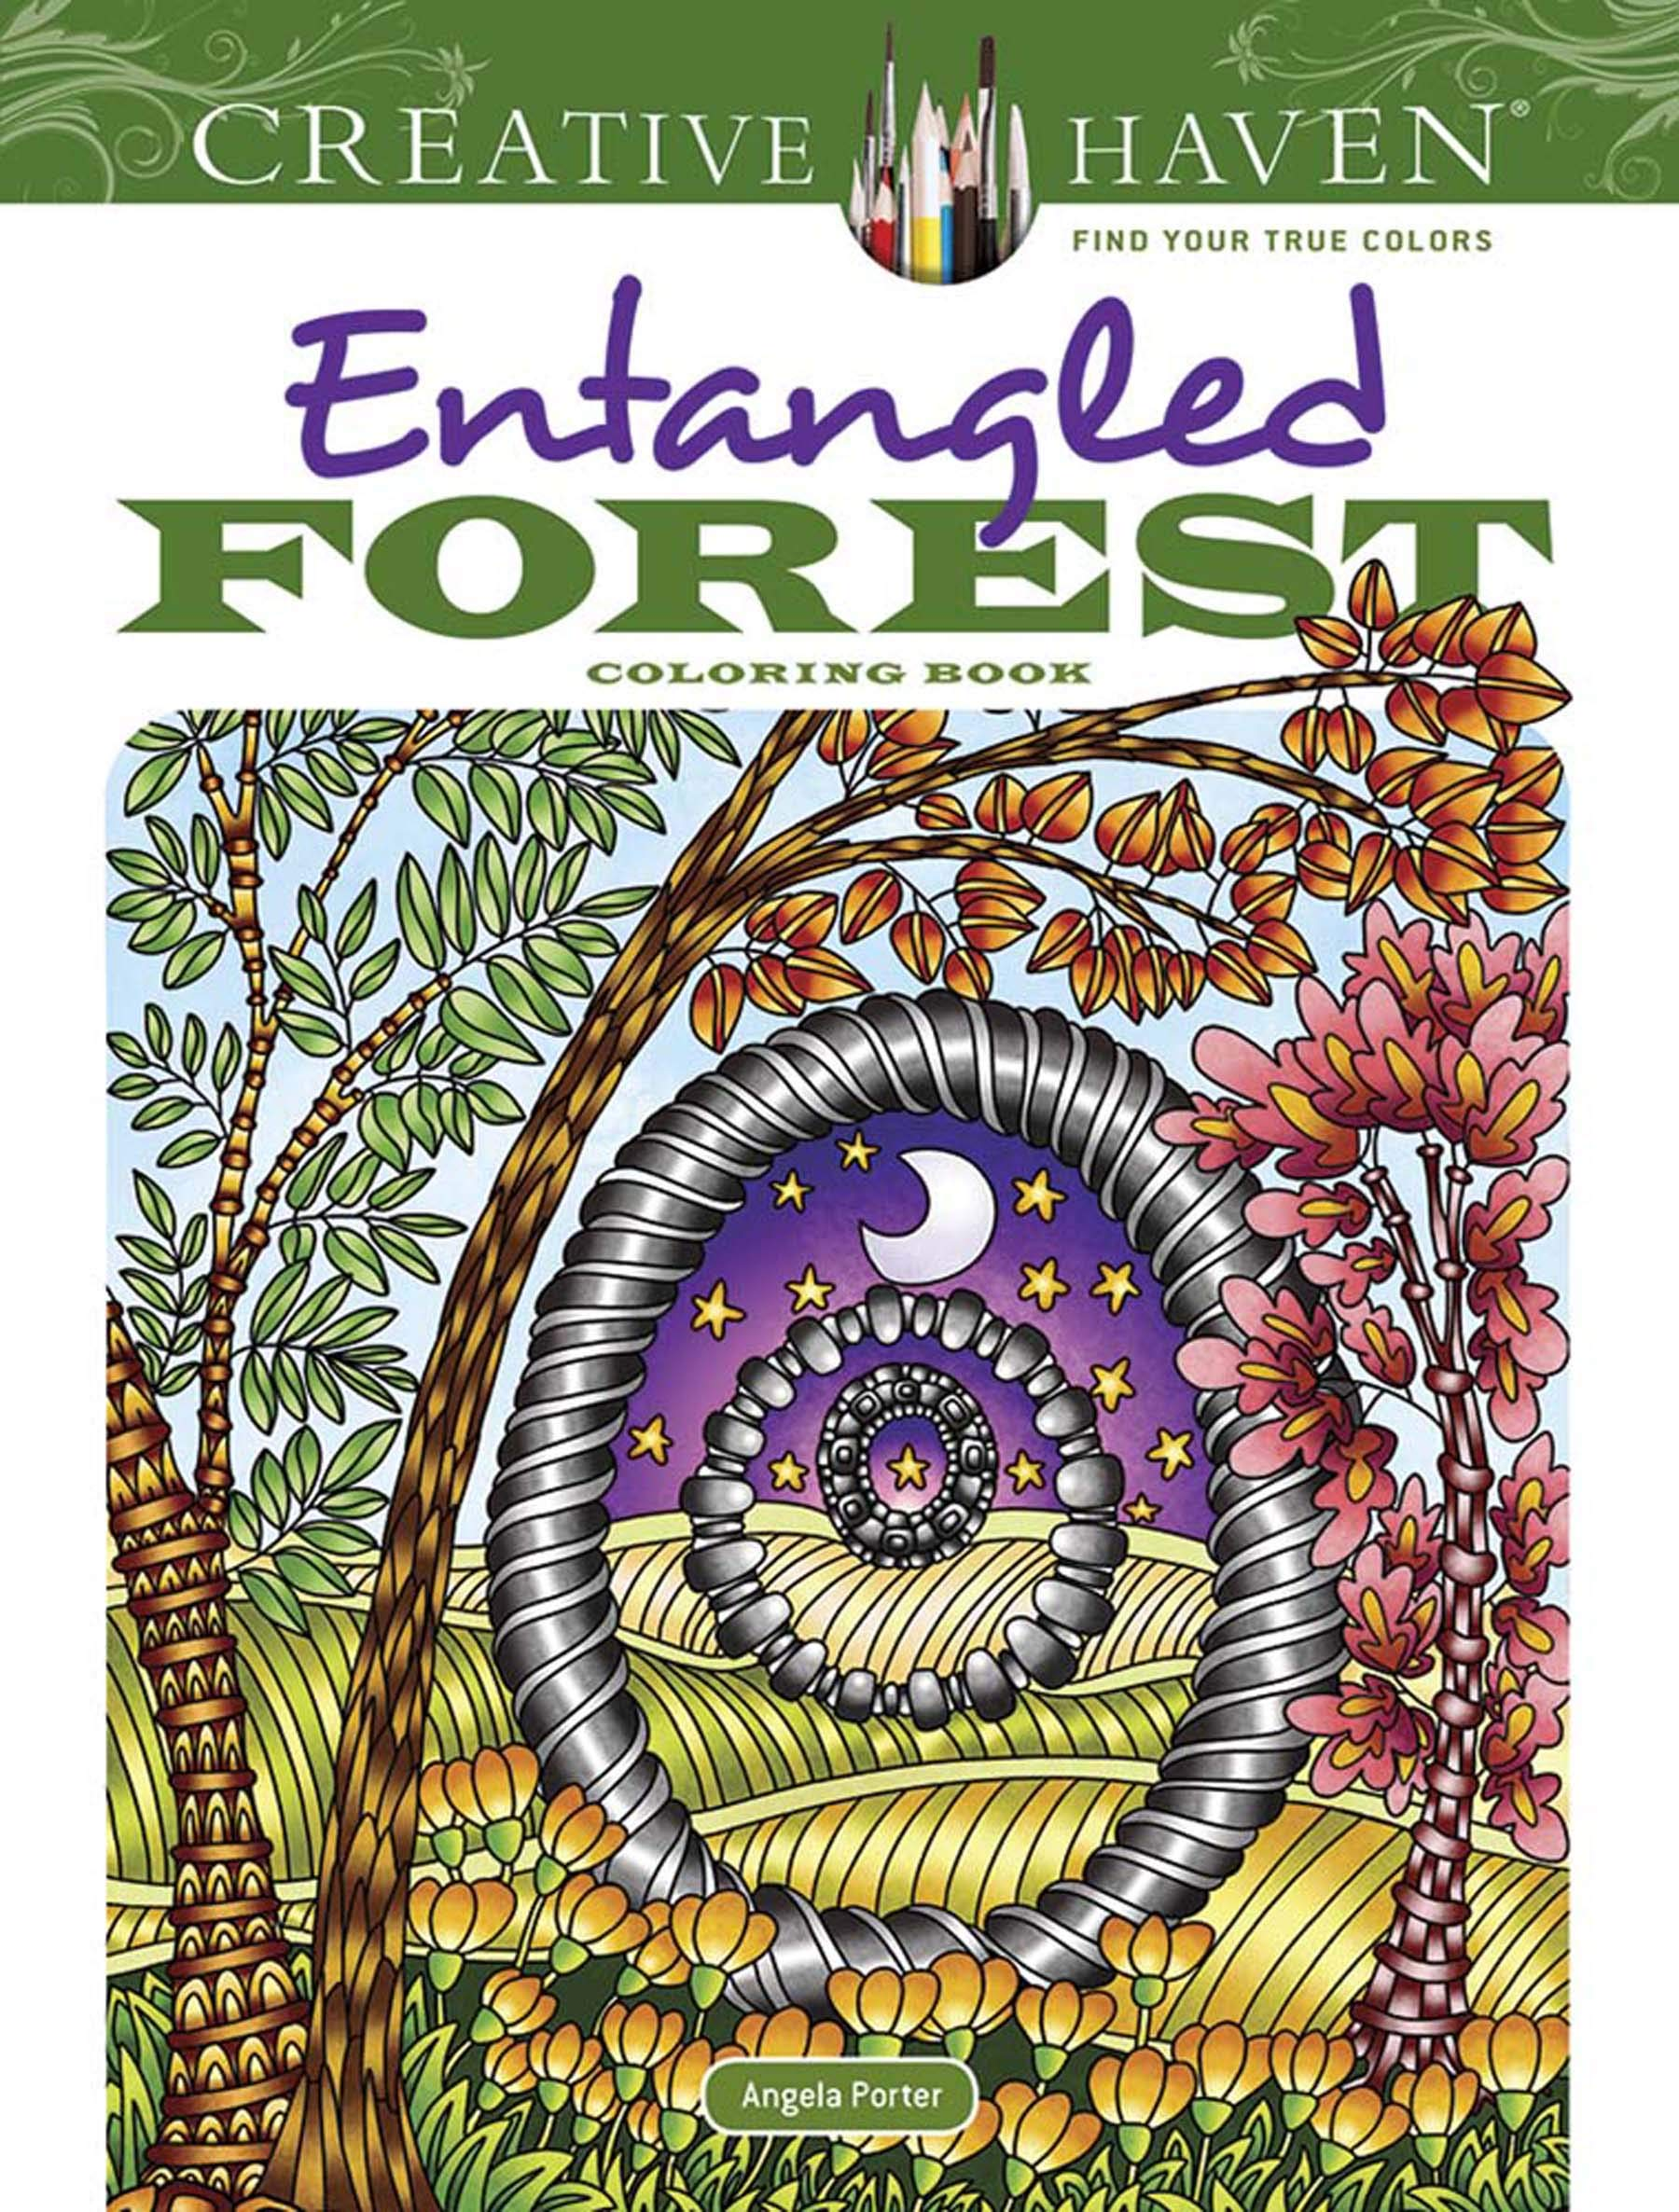 Amazon.com: Creative Haven Entangled Forest Coloring Book (Adult Coloring)  (9780486833996): Dr. Angela Porter: Books